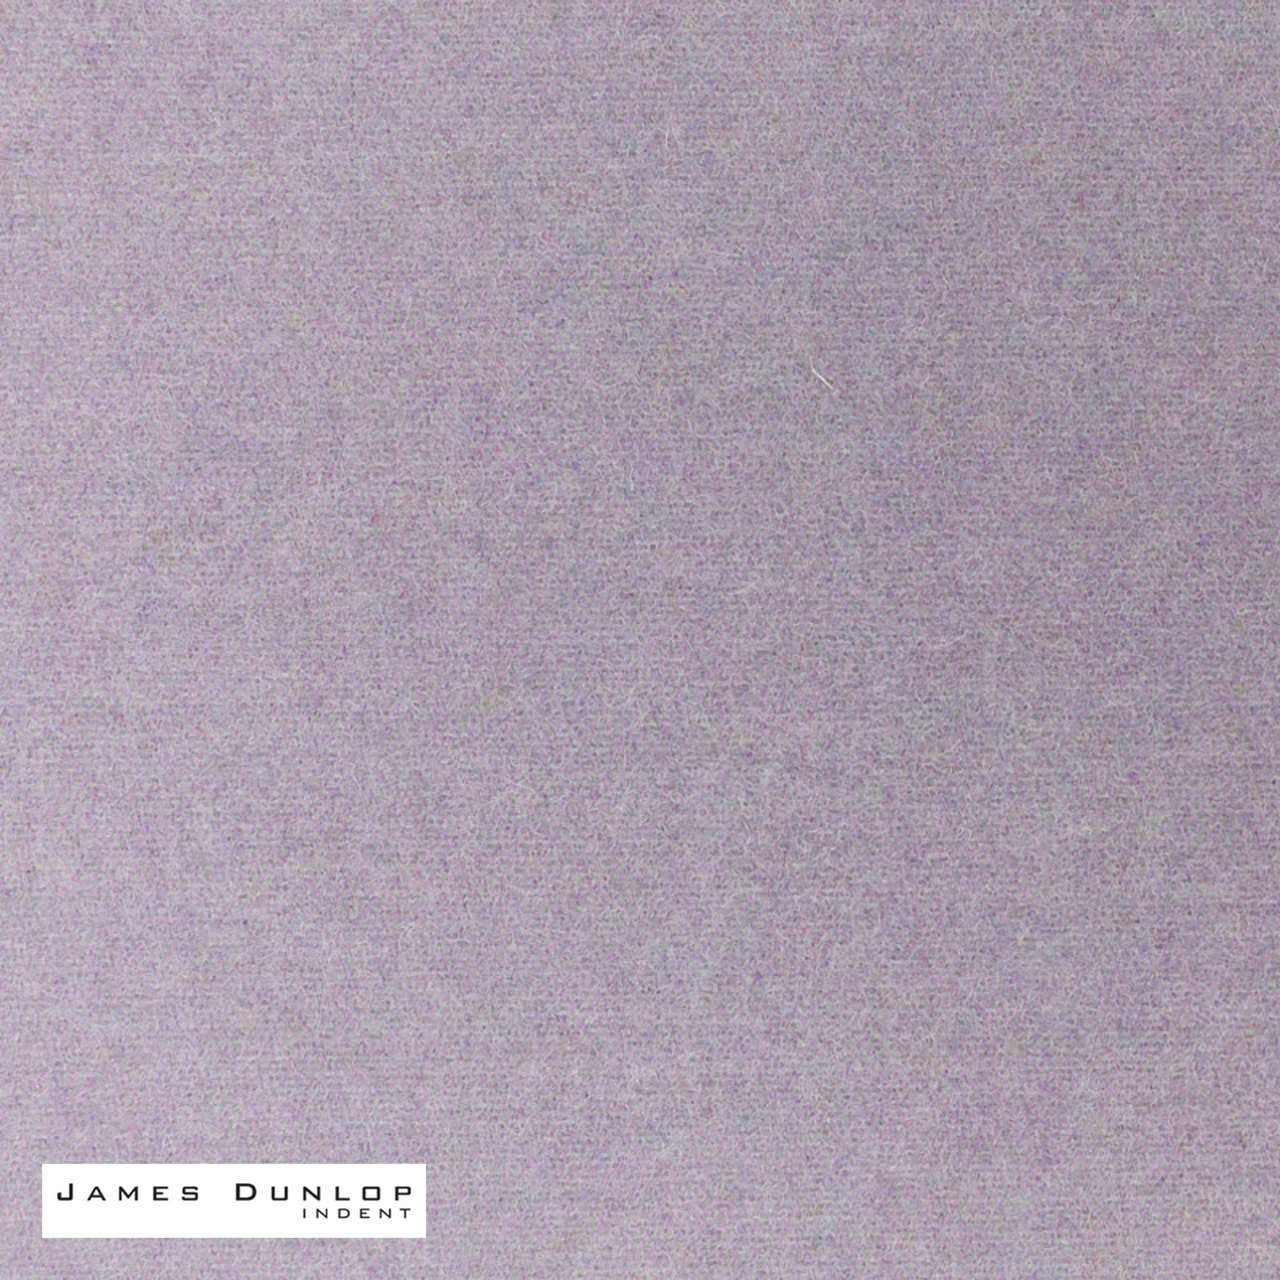 James Dunlop Indent - Nature - Passion  | Upholstery Fabric - Fire Retardant, Plain, Pink, Purple, Synthetic, Commercial Use, Dry Clean, Standard Width